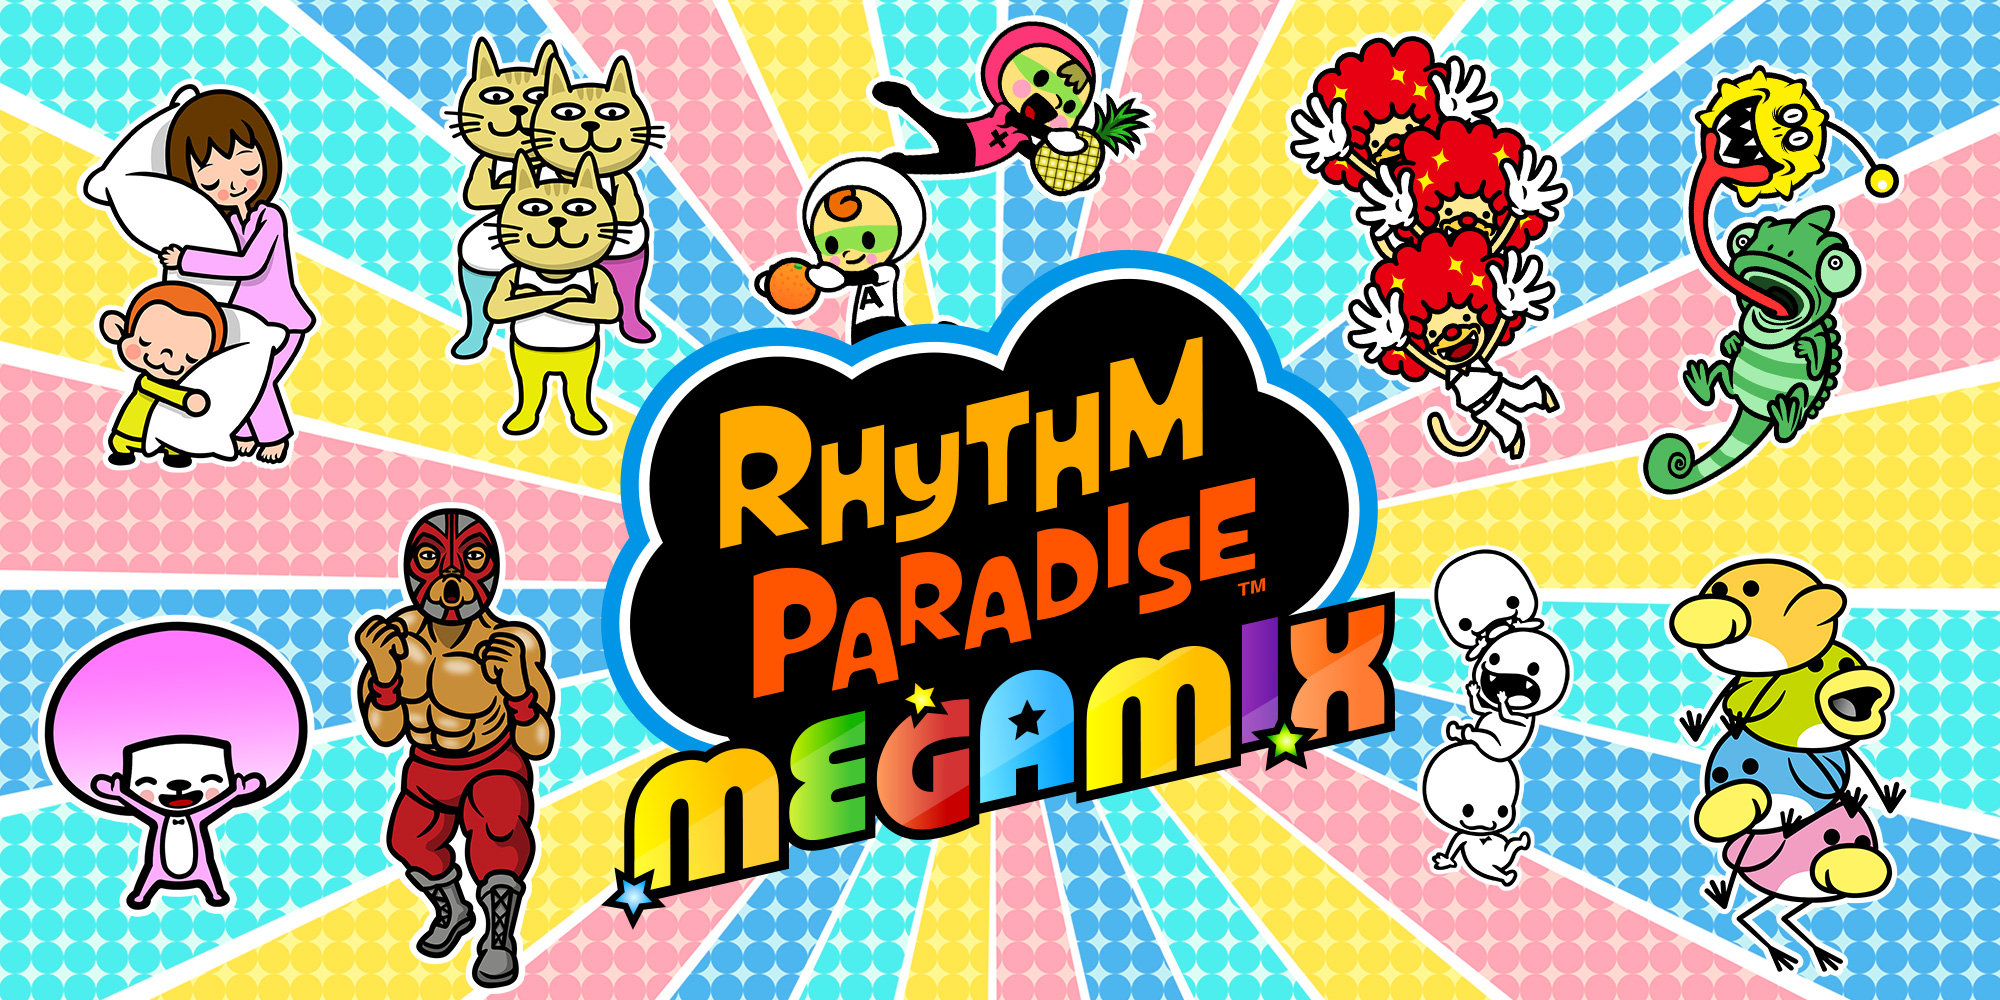 Find your flow at our updated Rhythm Paradise Megamix gamepage!